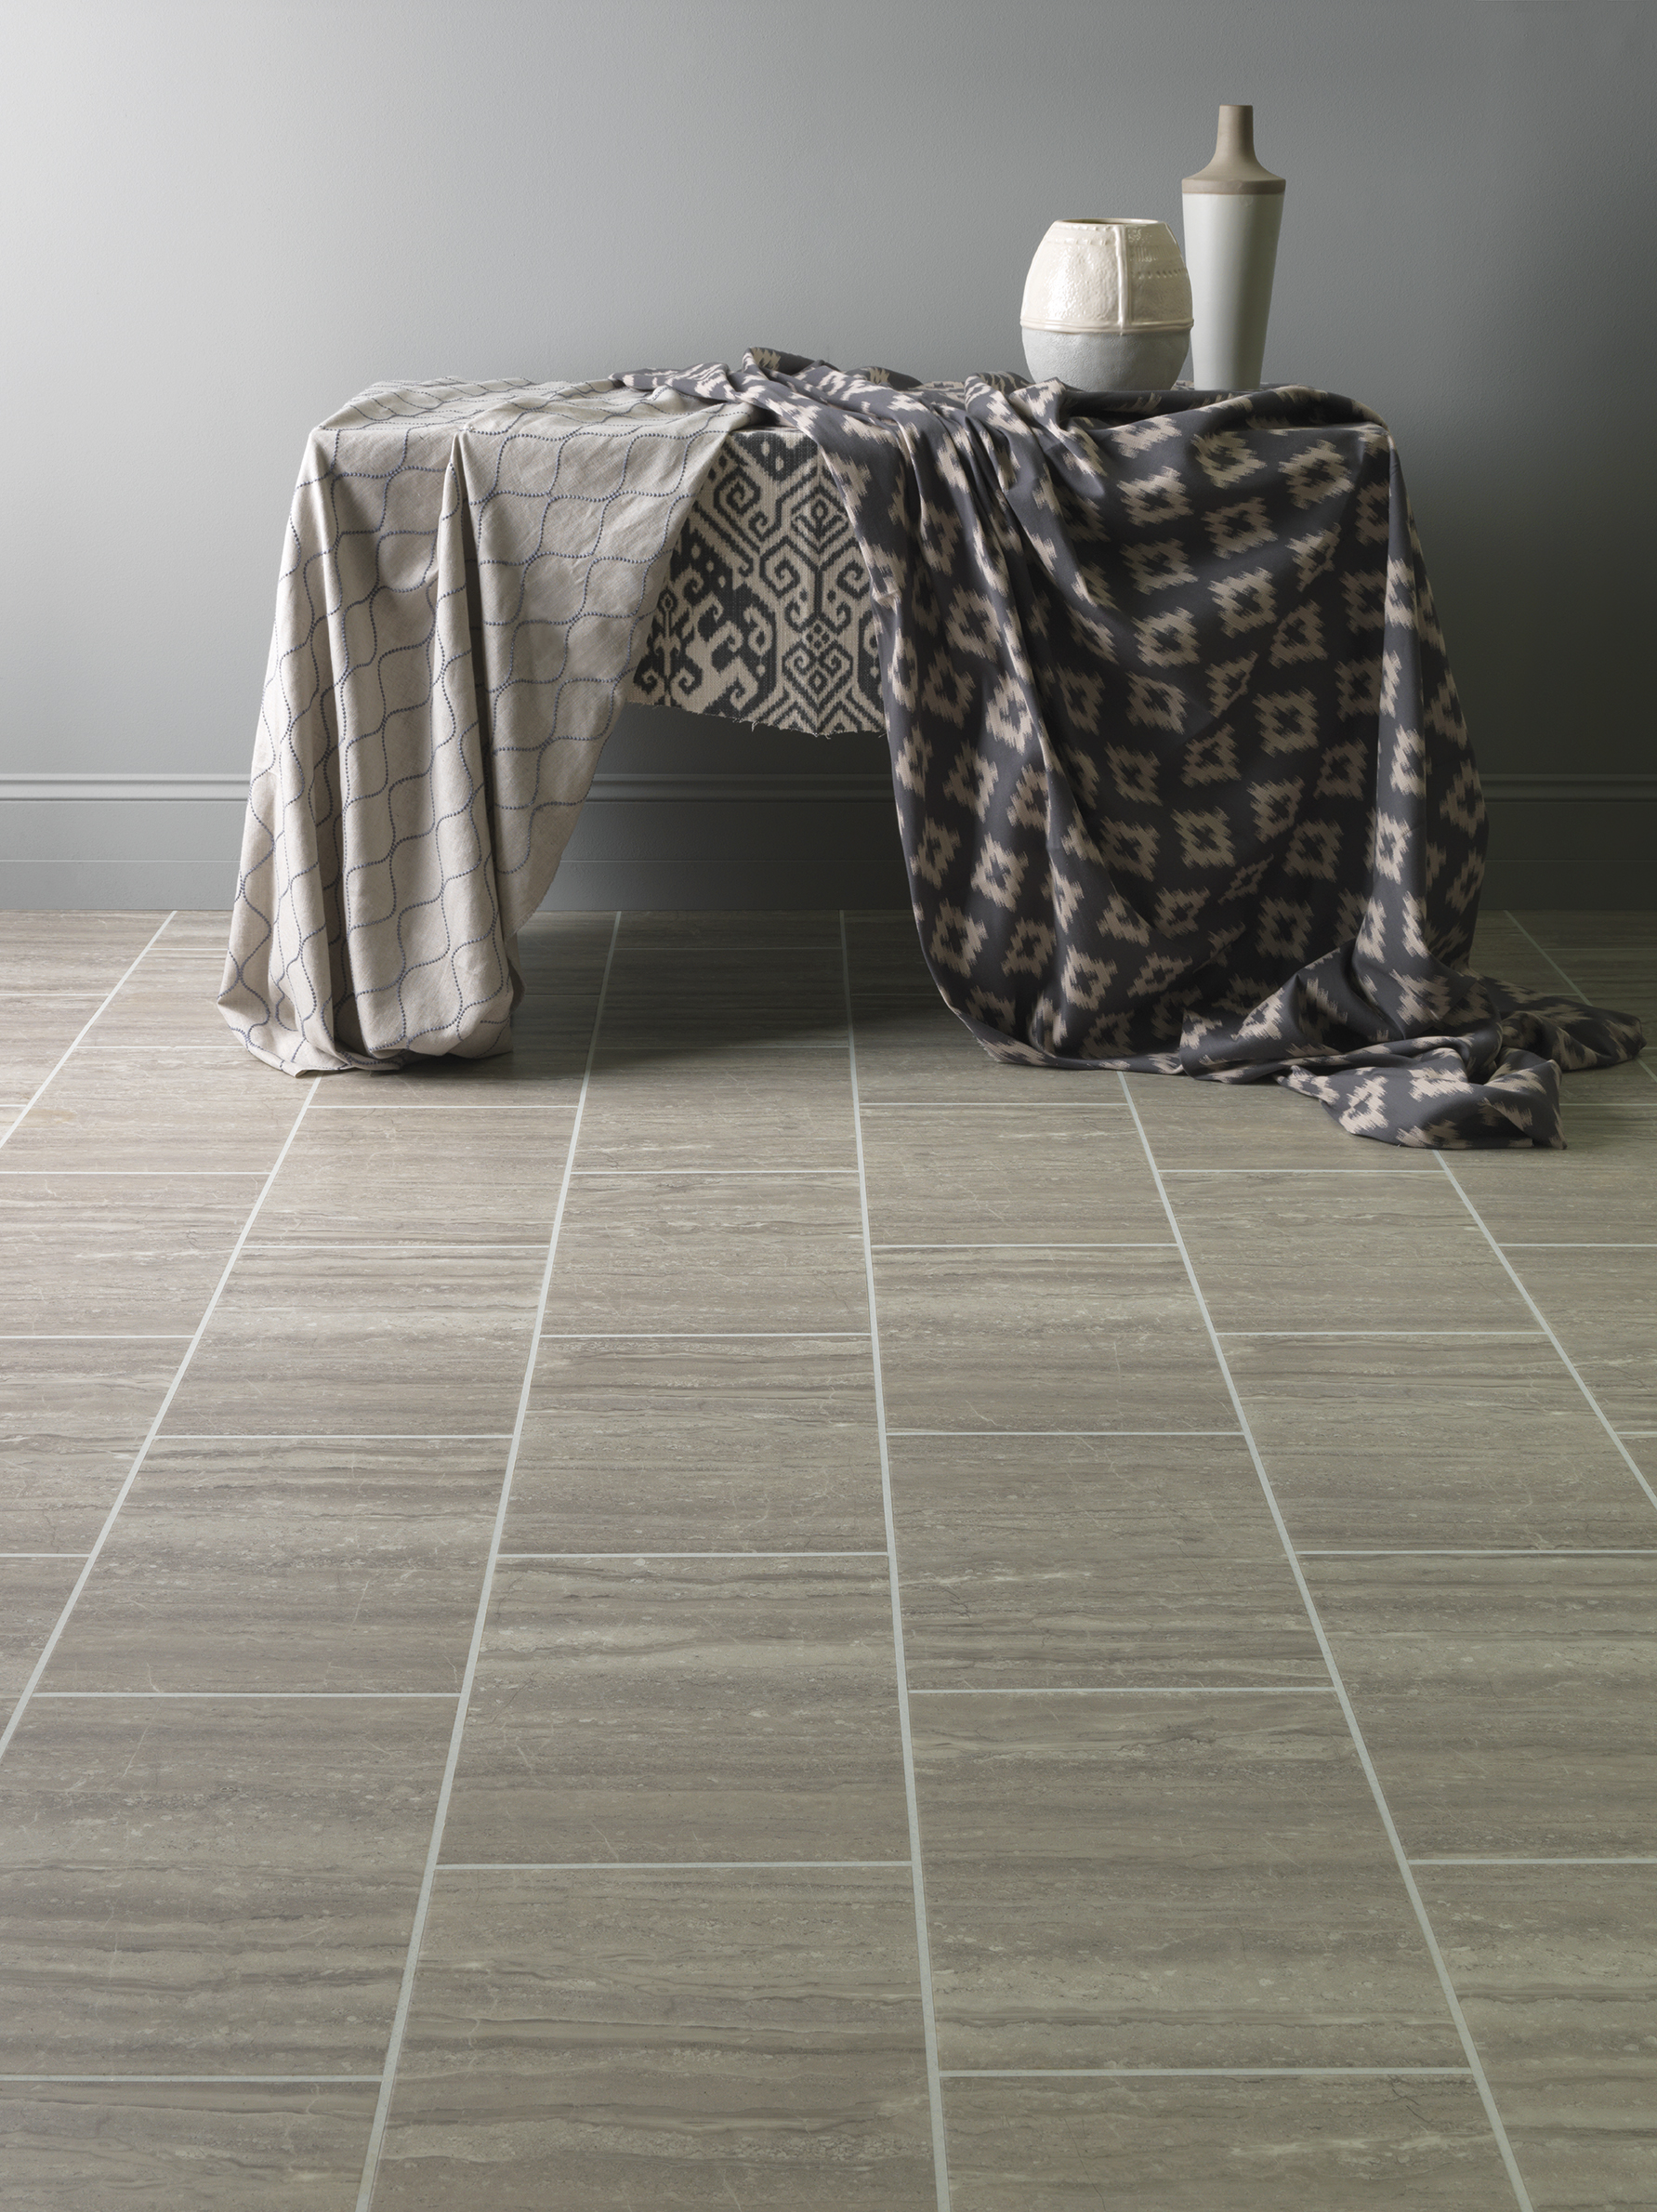 Can you seal porcelain floor tiles